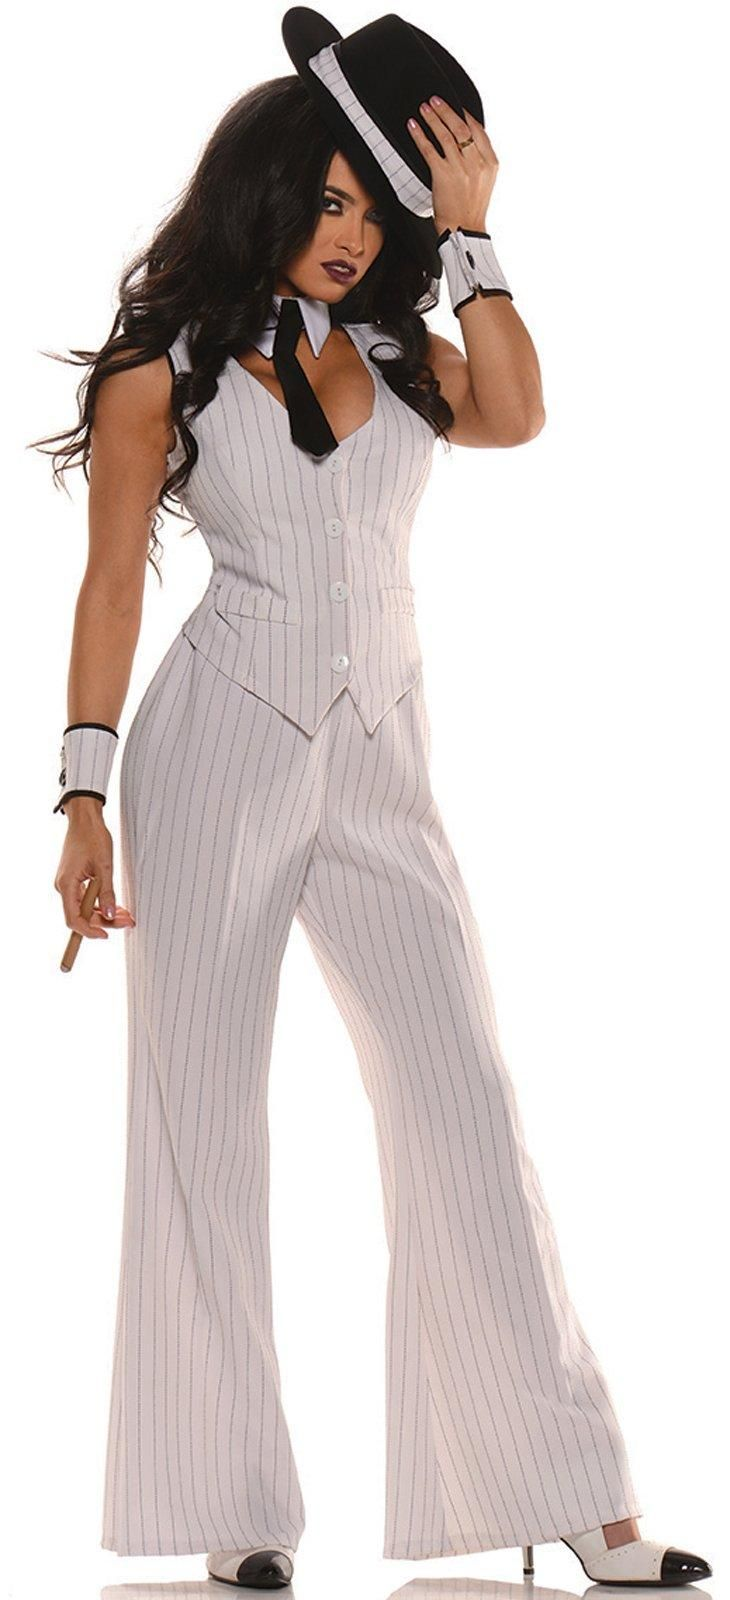 Mob Boss Gangster Costume For Women from CostumeExpress.com